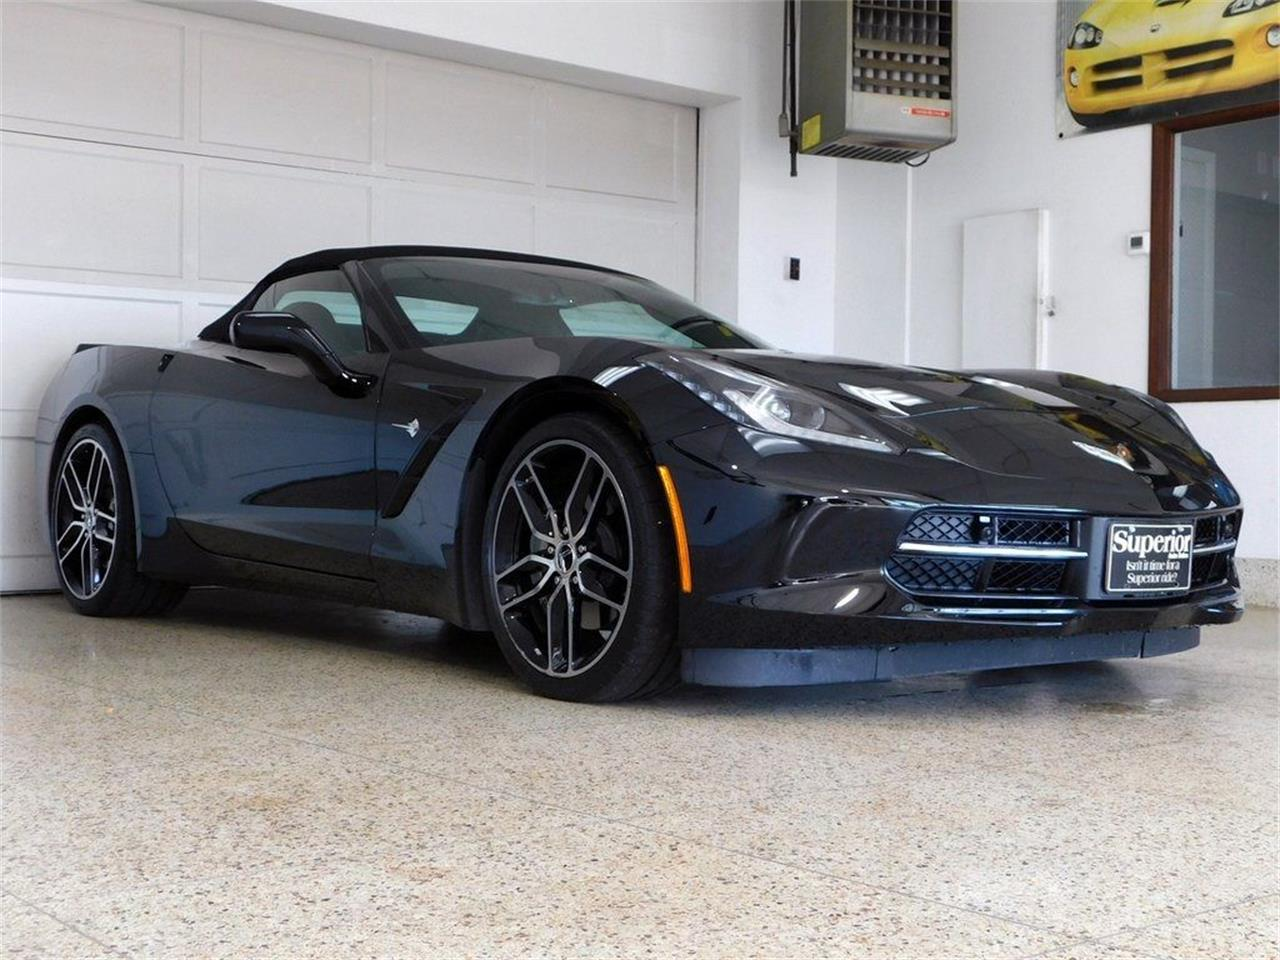 2017 Chevrolet Corvette Stingray (CC-1416850) for sale in Hamburg, New York